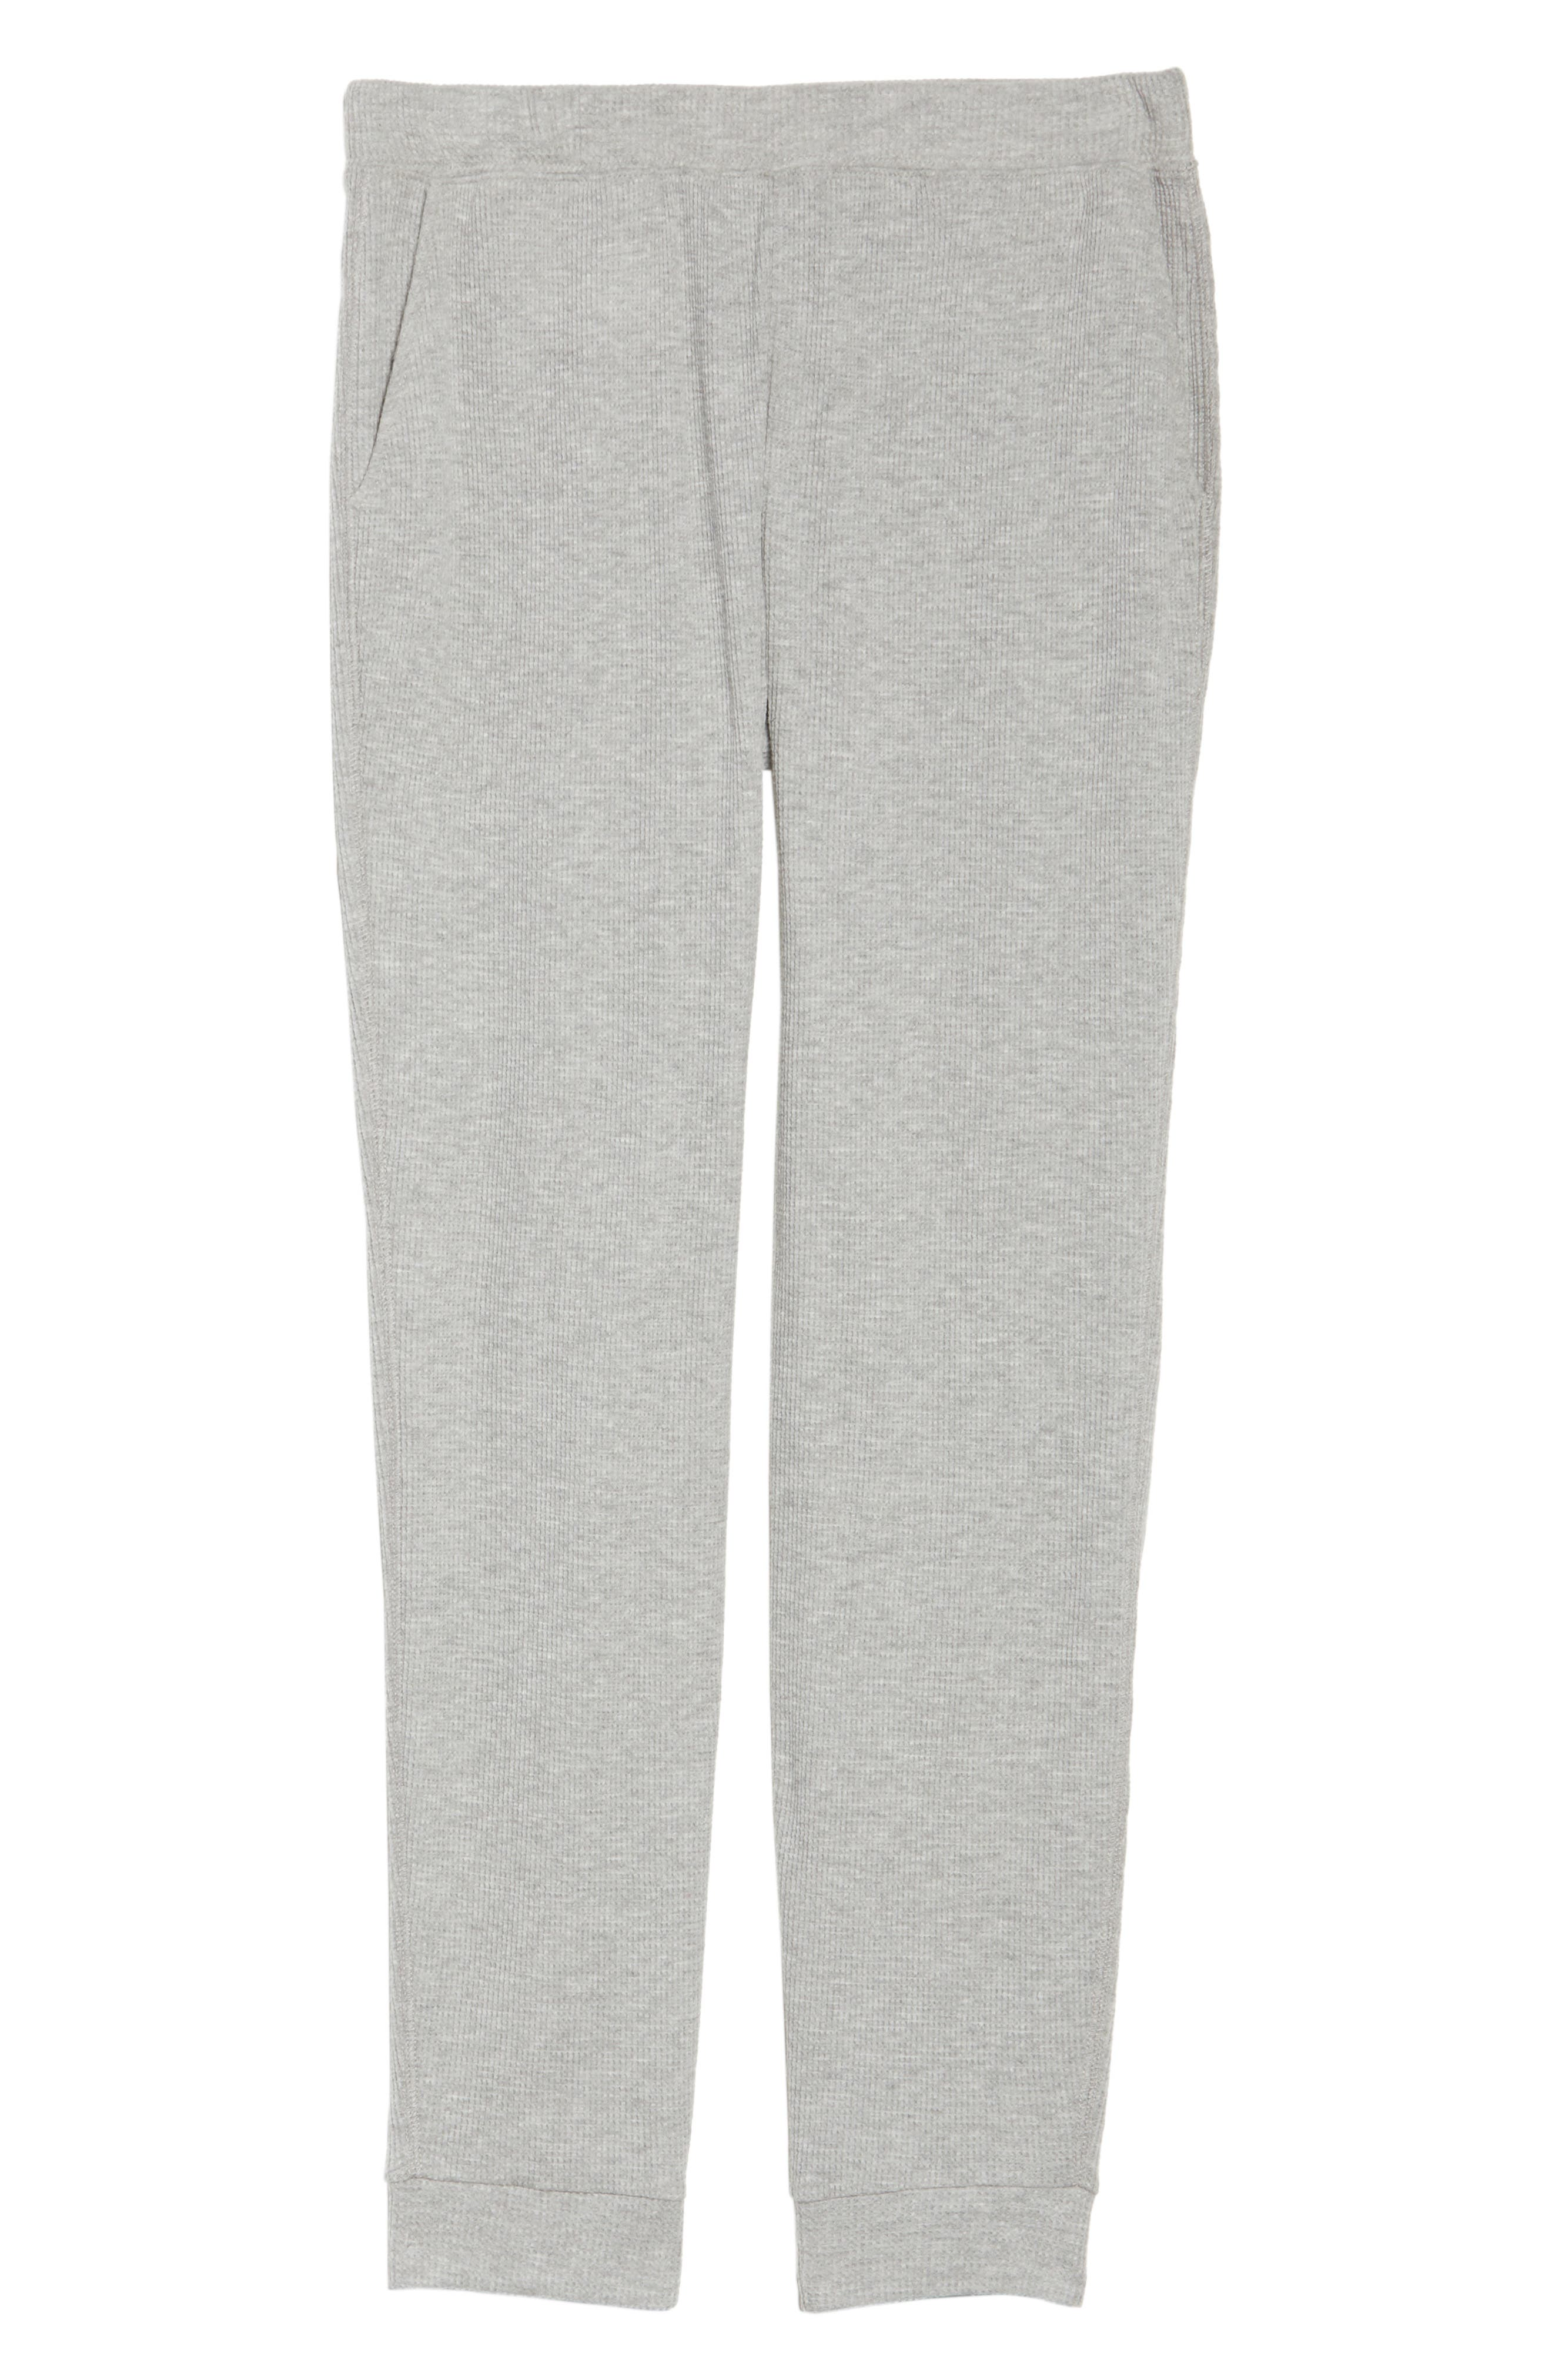 Ily Waffle Knit Lounge Pants,                             Alternate thumbnail 6, color,